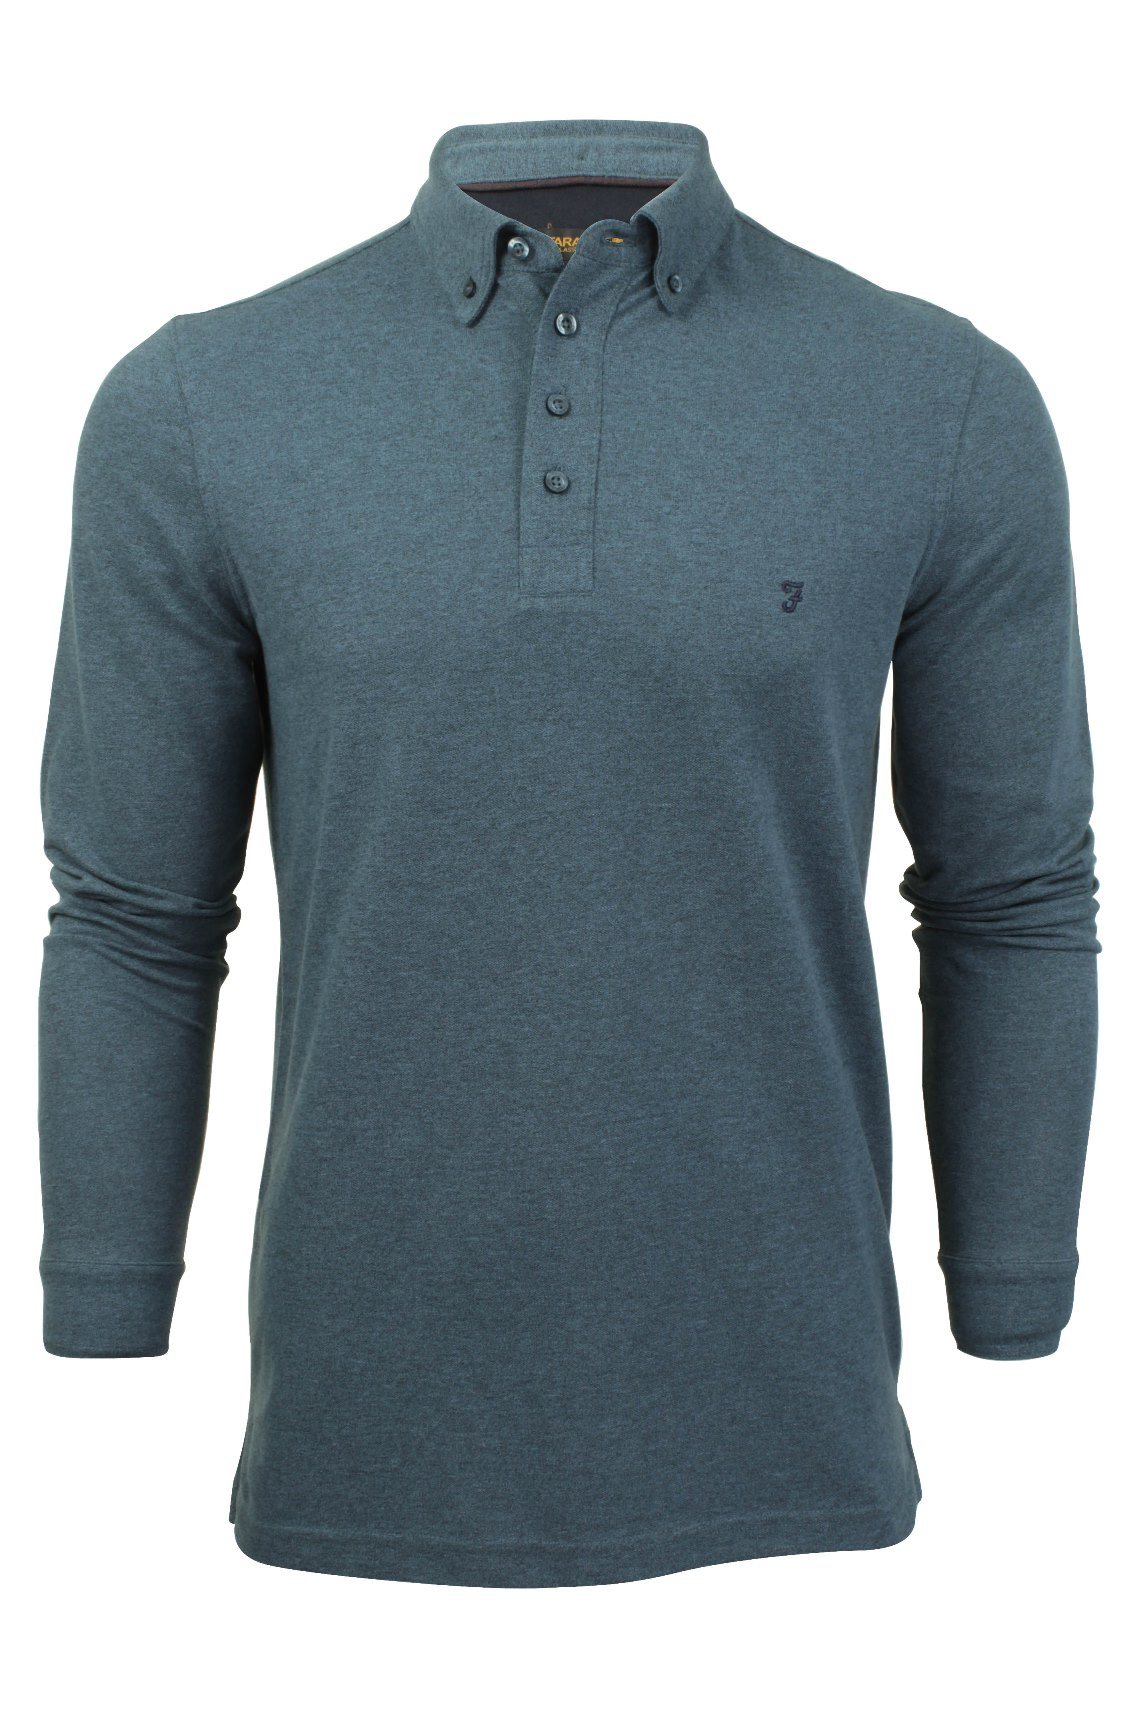 Mens polo shirt by farah classic 39 buchanan 39 button down for Polo shirts without buttons